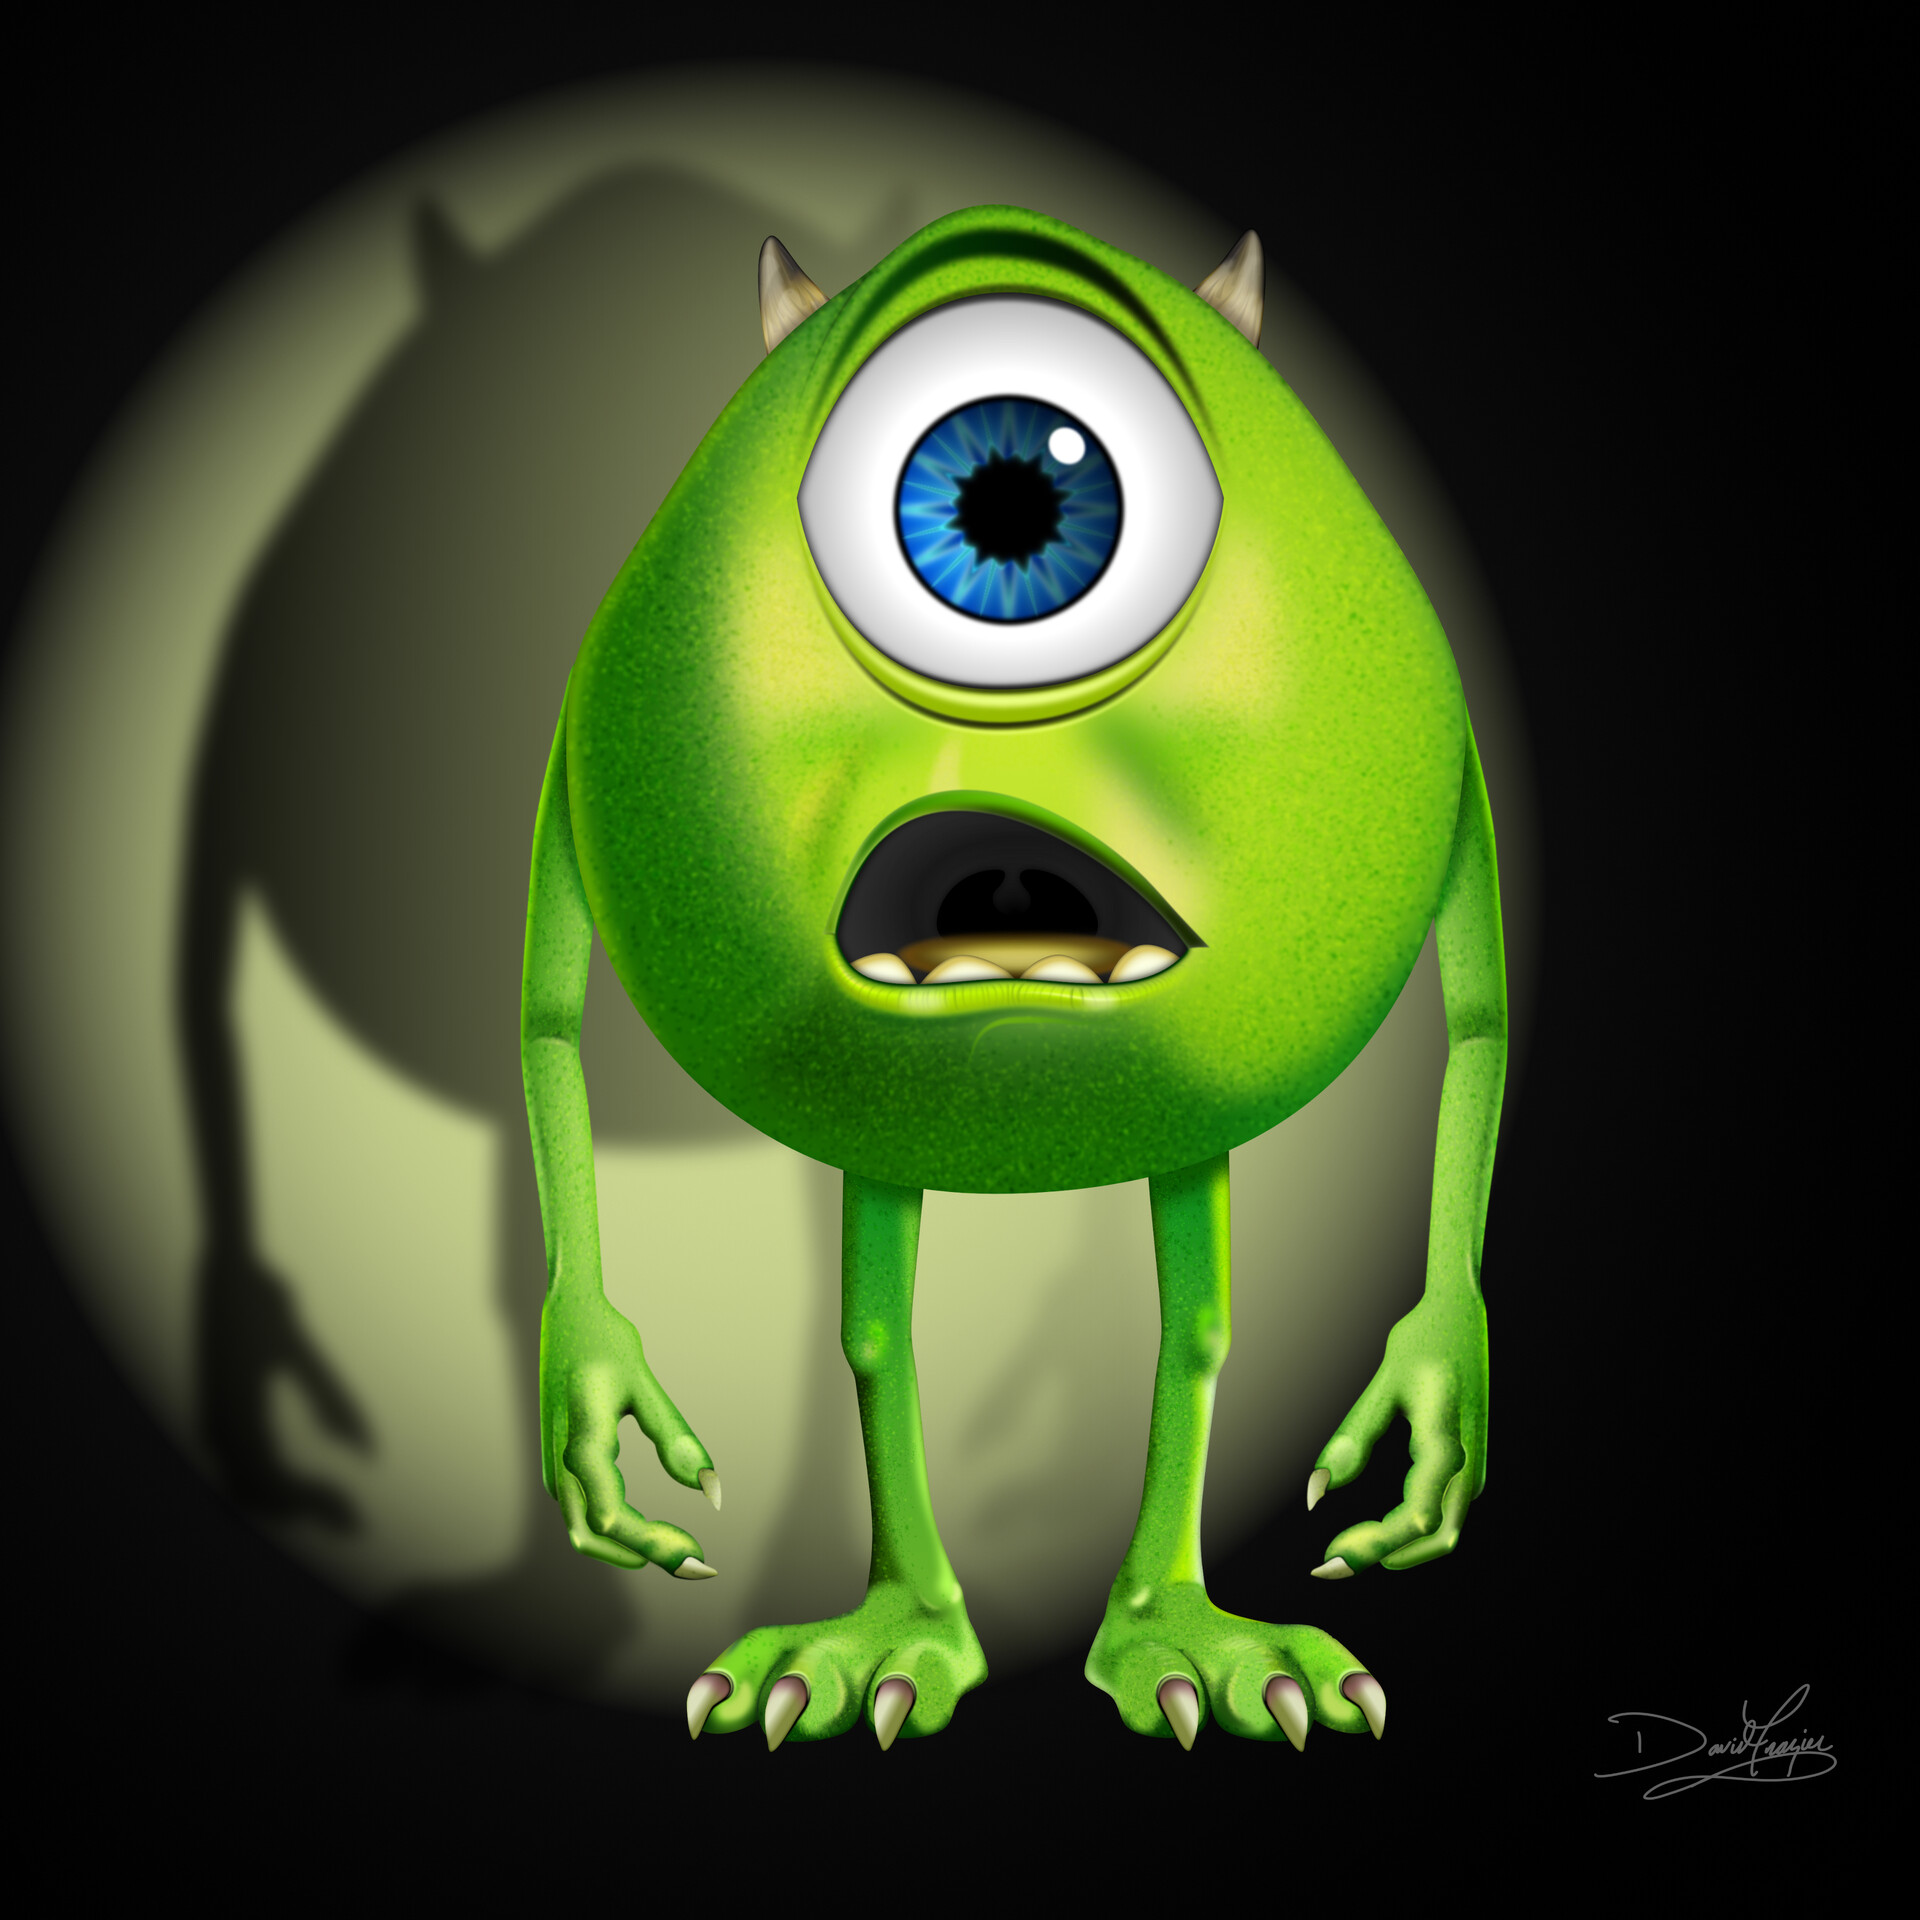 Mike Wazowski. Affinity Designer. All vector